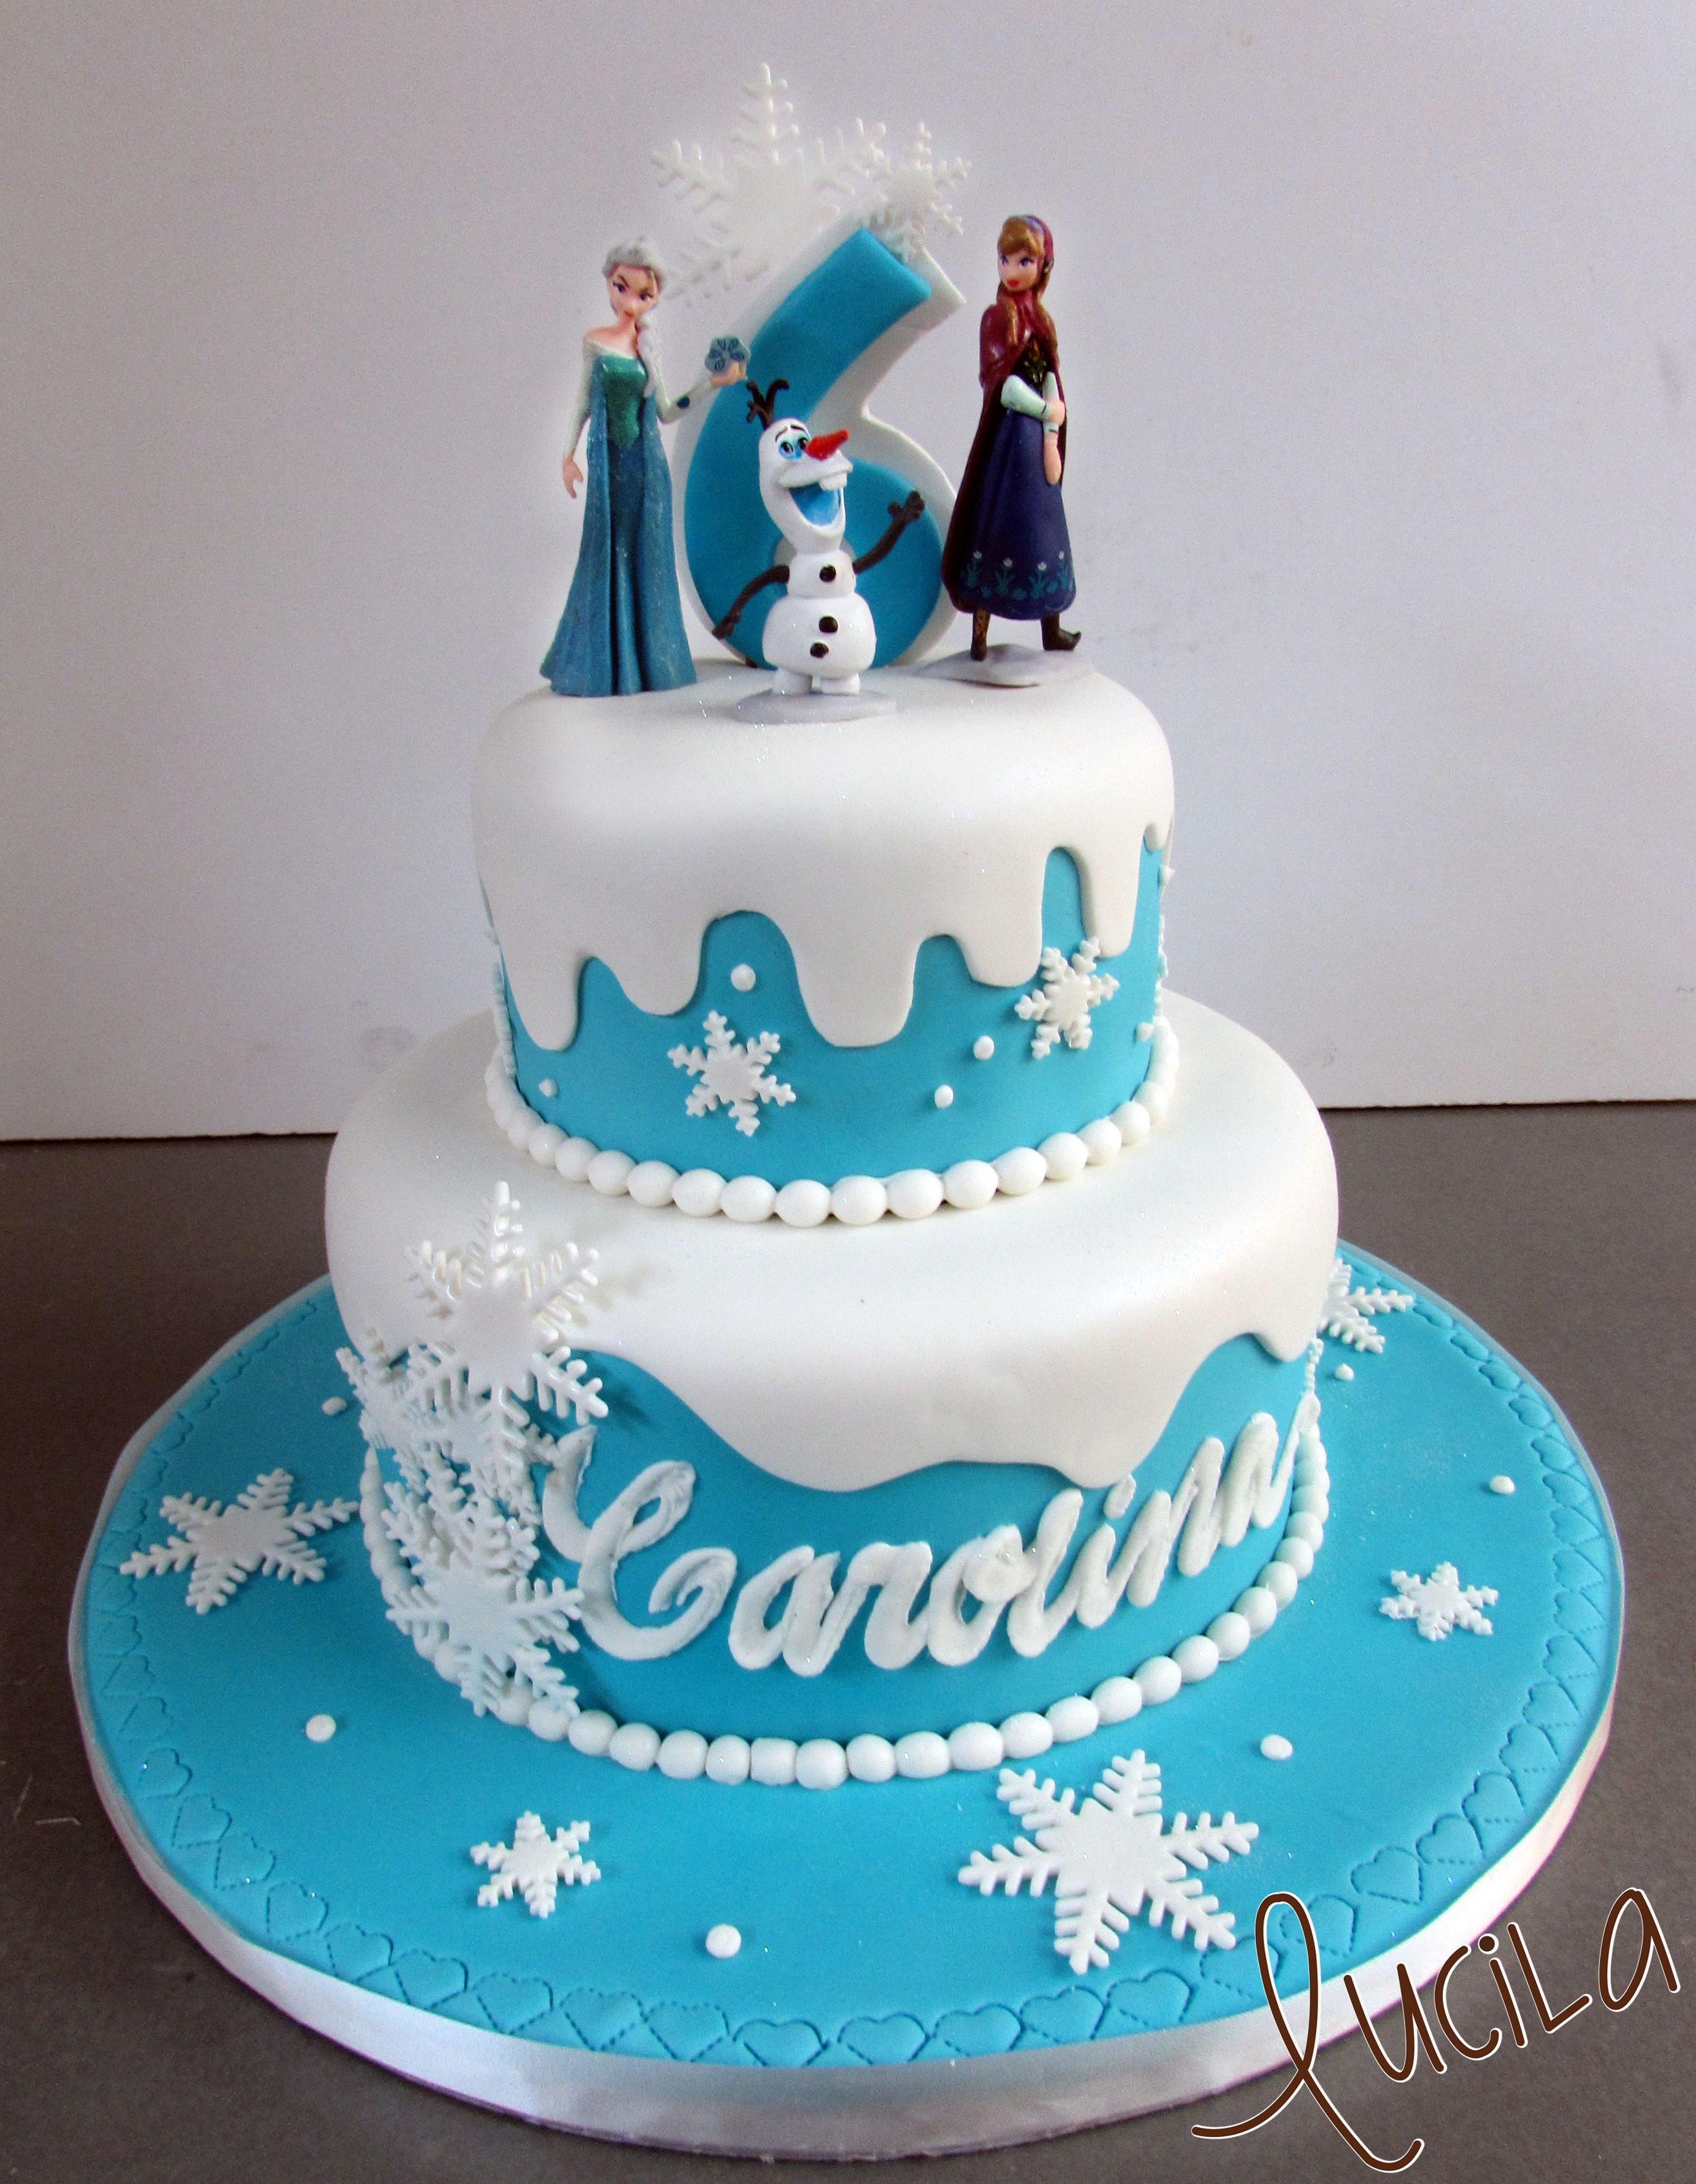 Two Tier Fondant Cake With Frozen Characters On Top